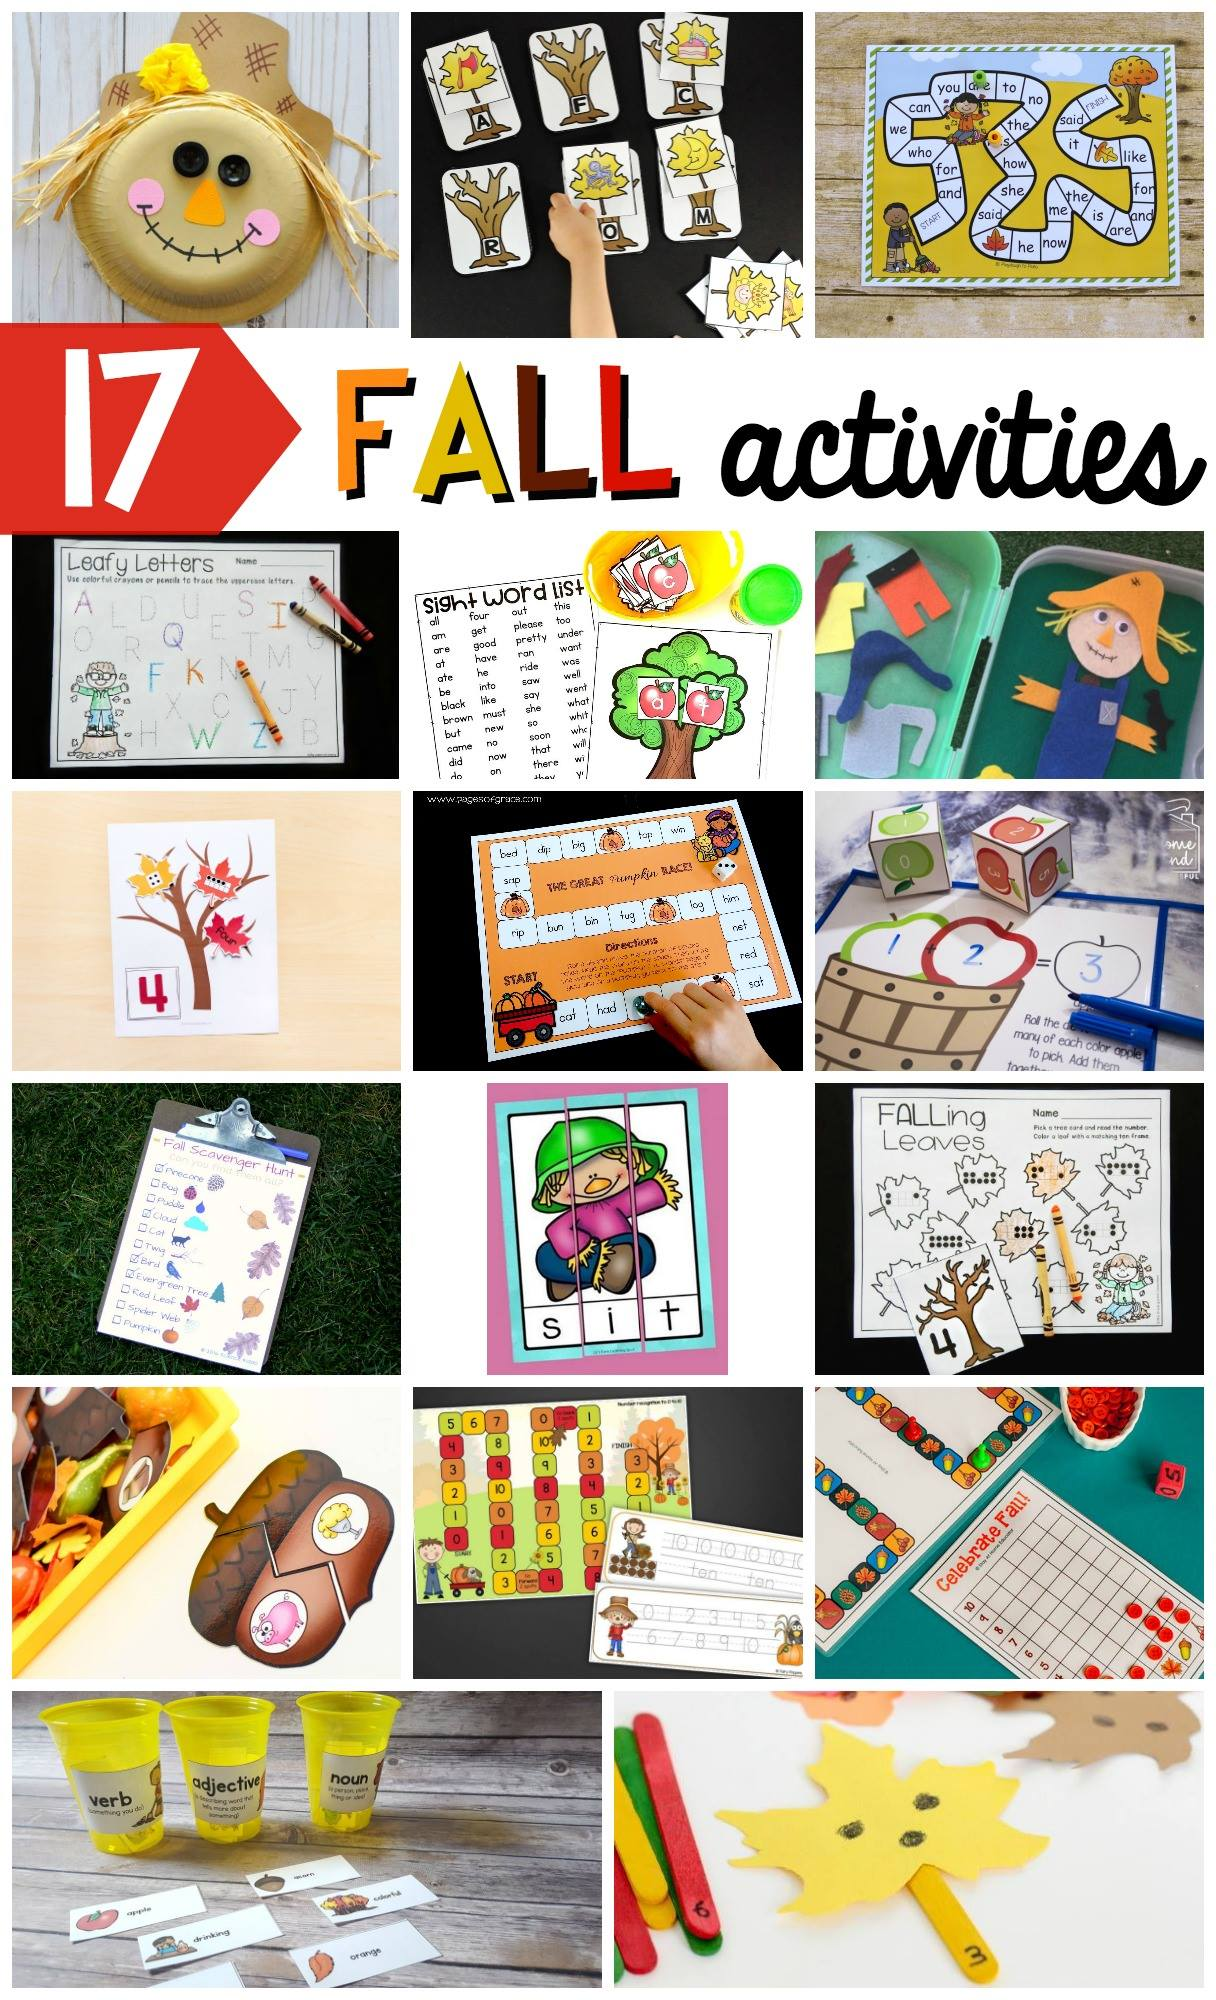 Awesome fall activities for kids!